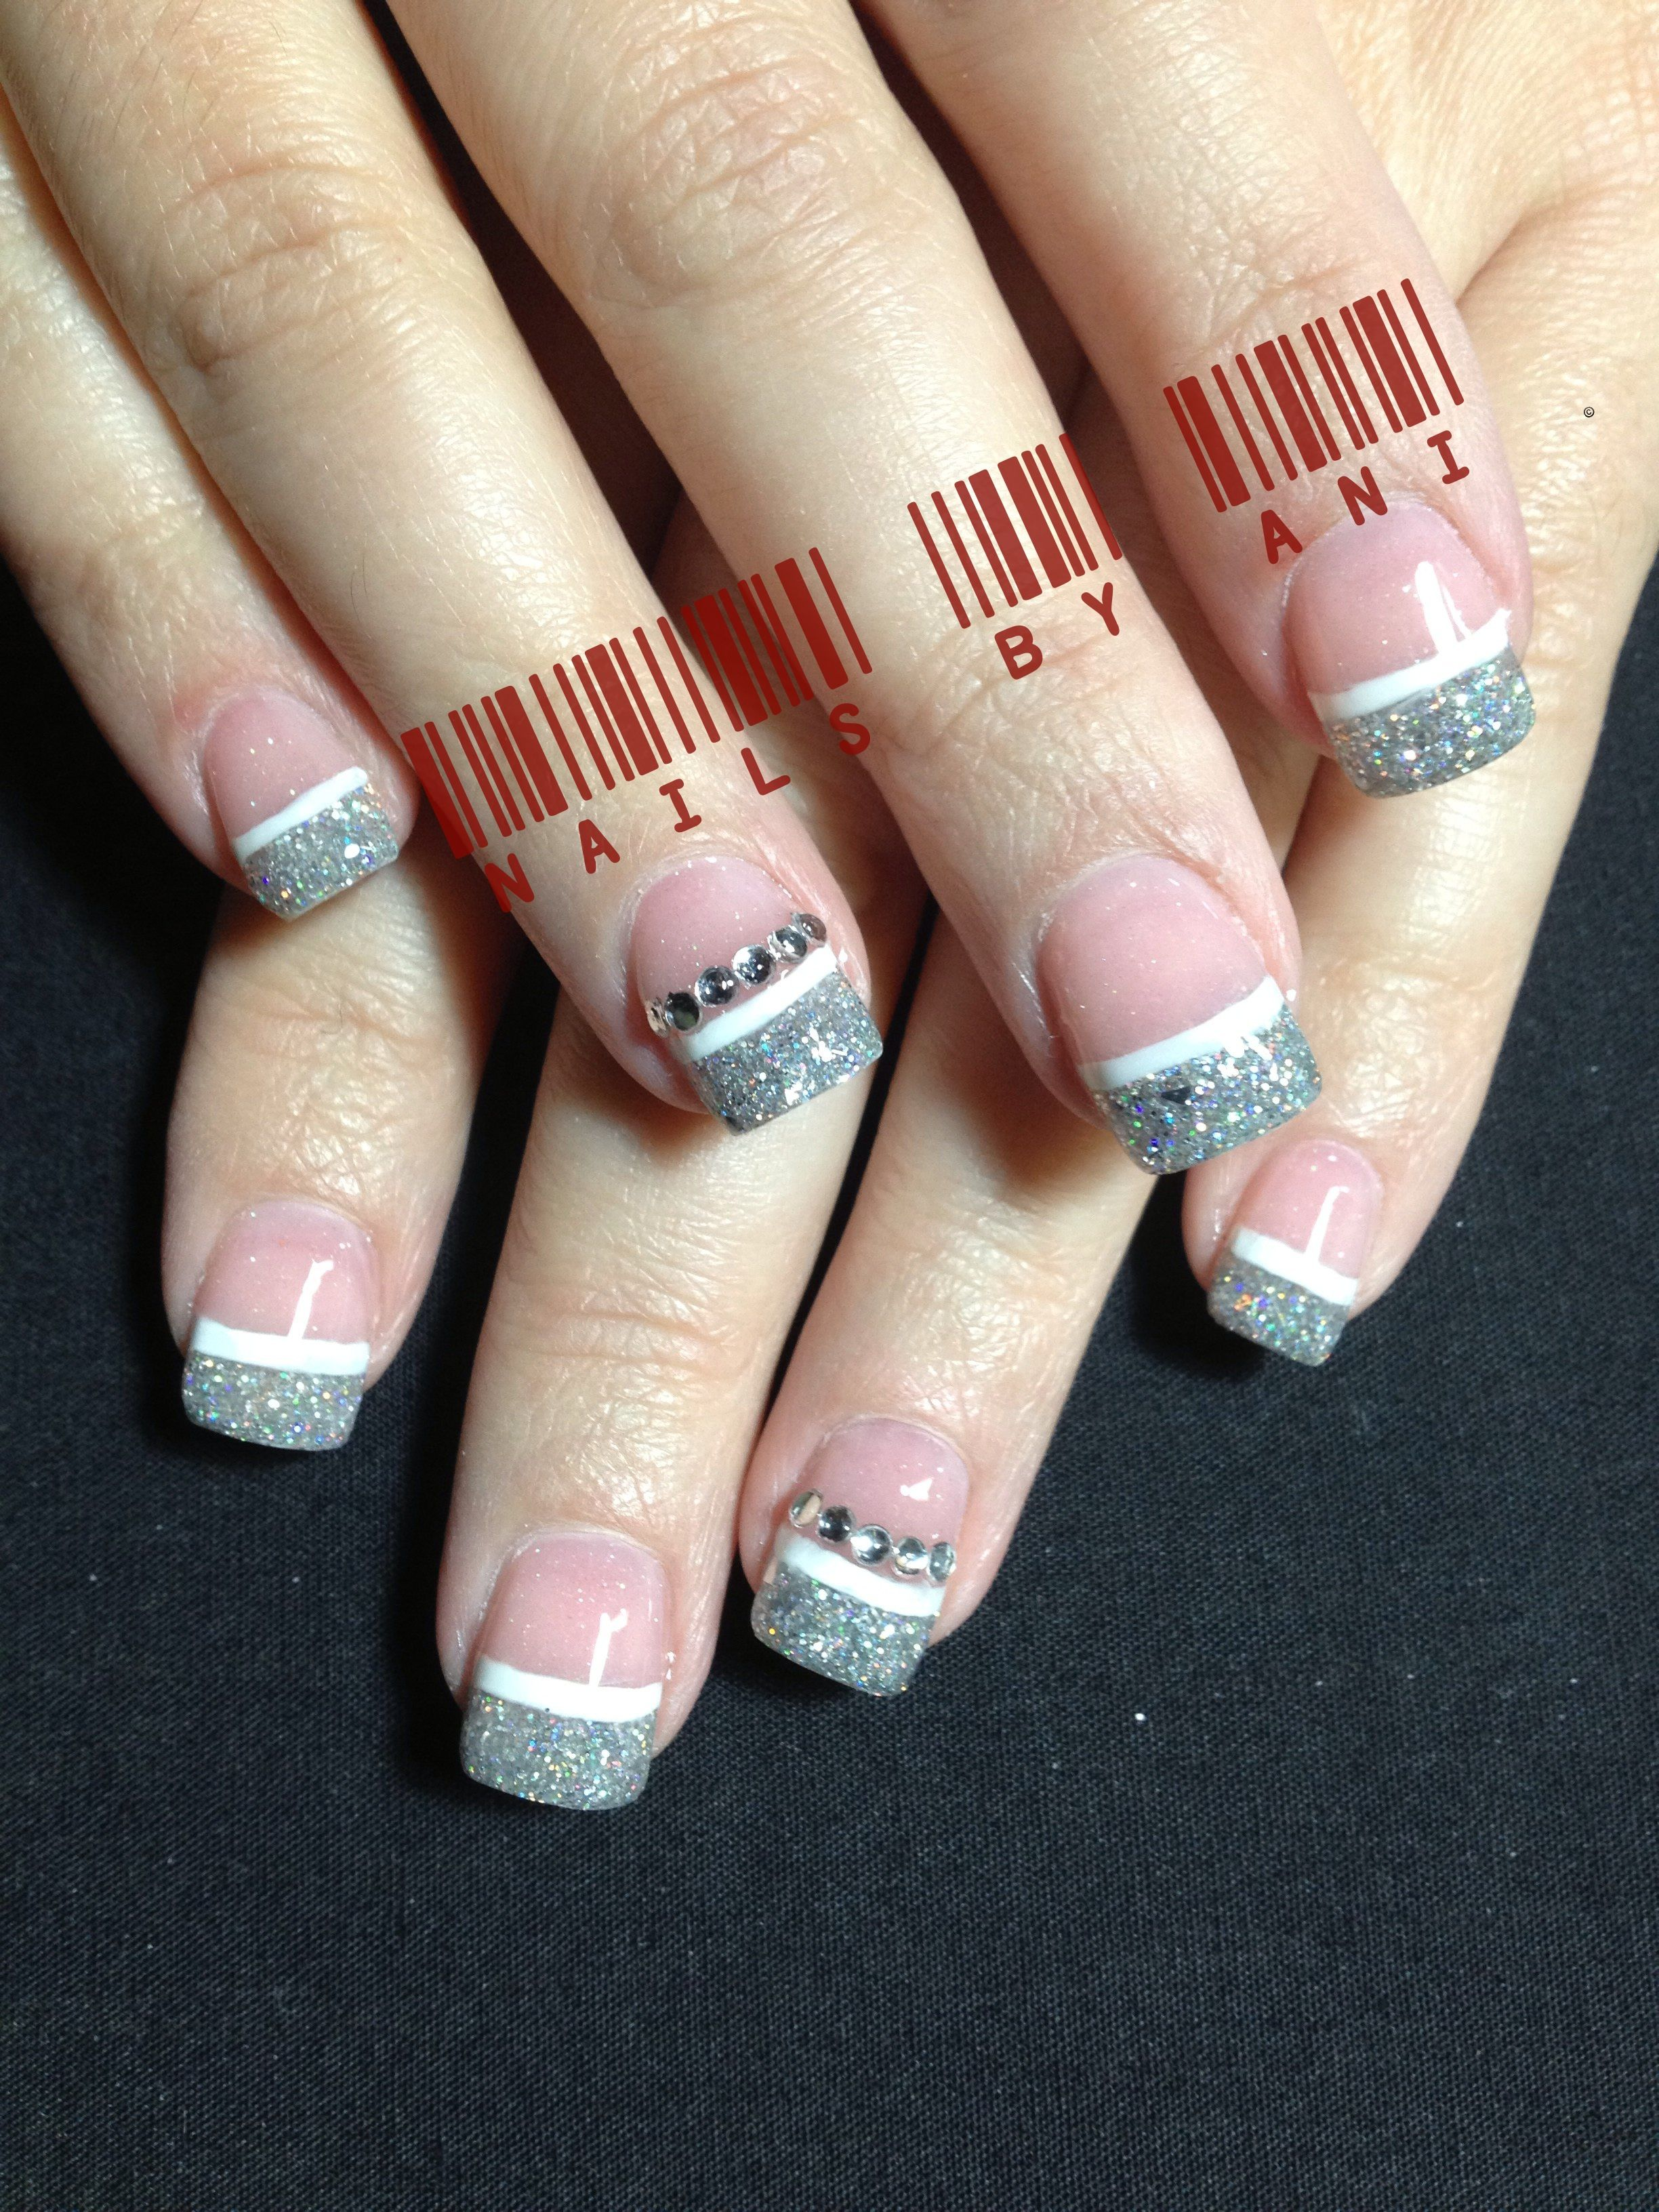 Silver French | Acrylic nail designs | Pinterest | Acrylic nail designs